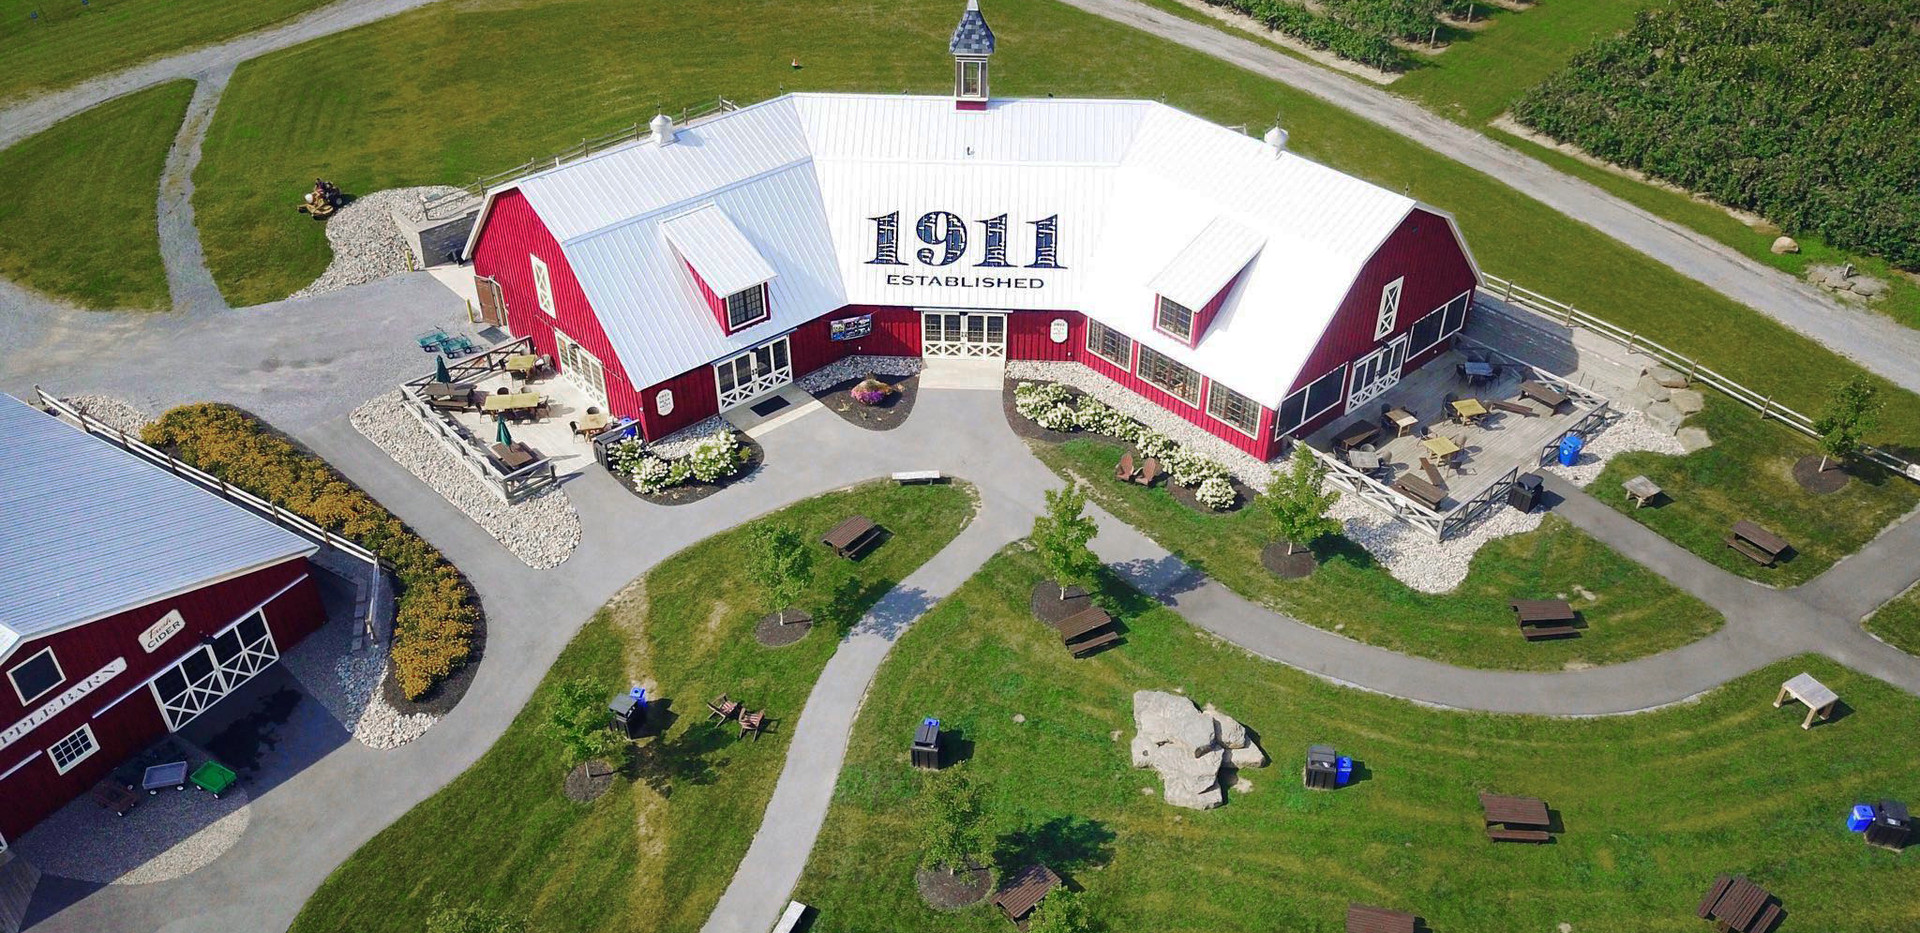 Areal 1911 Established Distillery Lafayette NY_Ramsgard